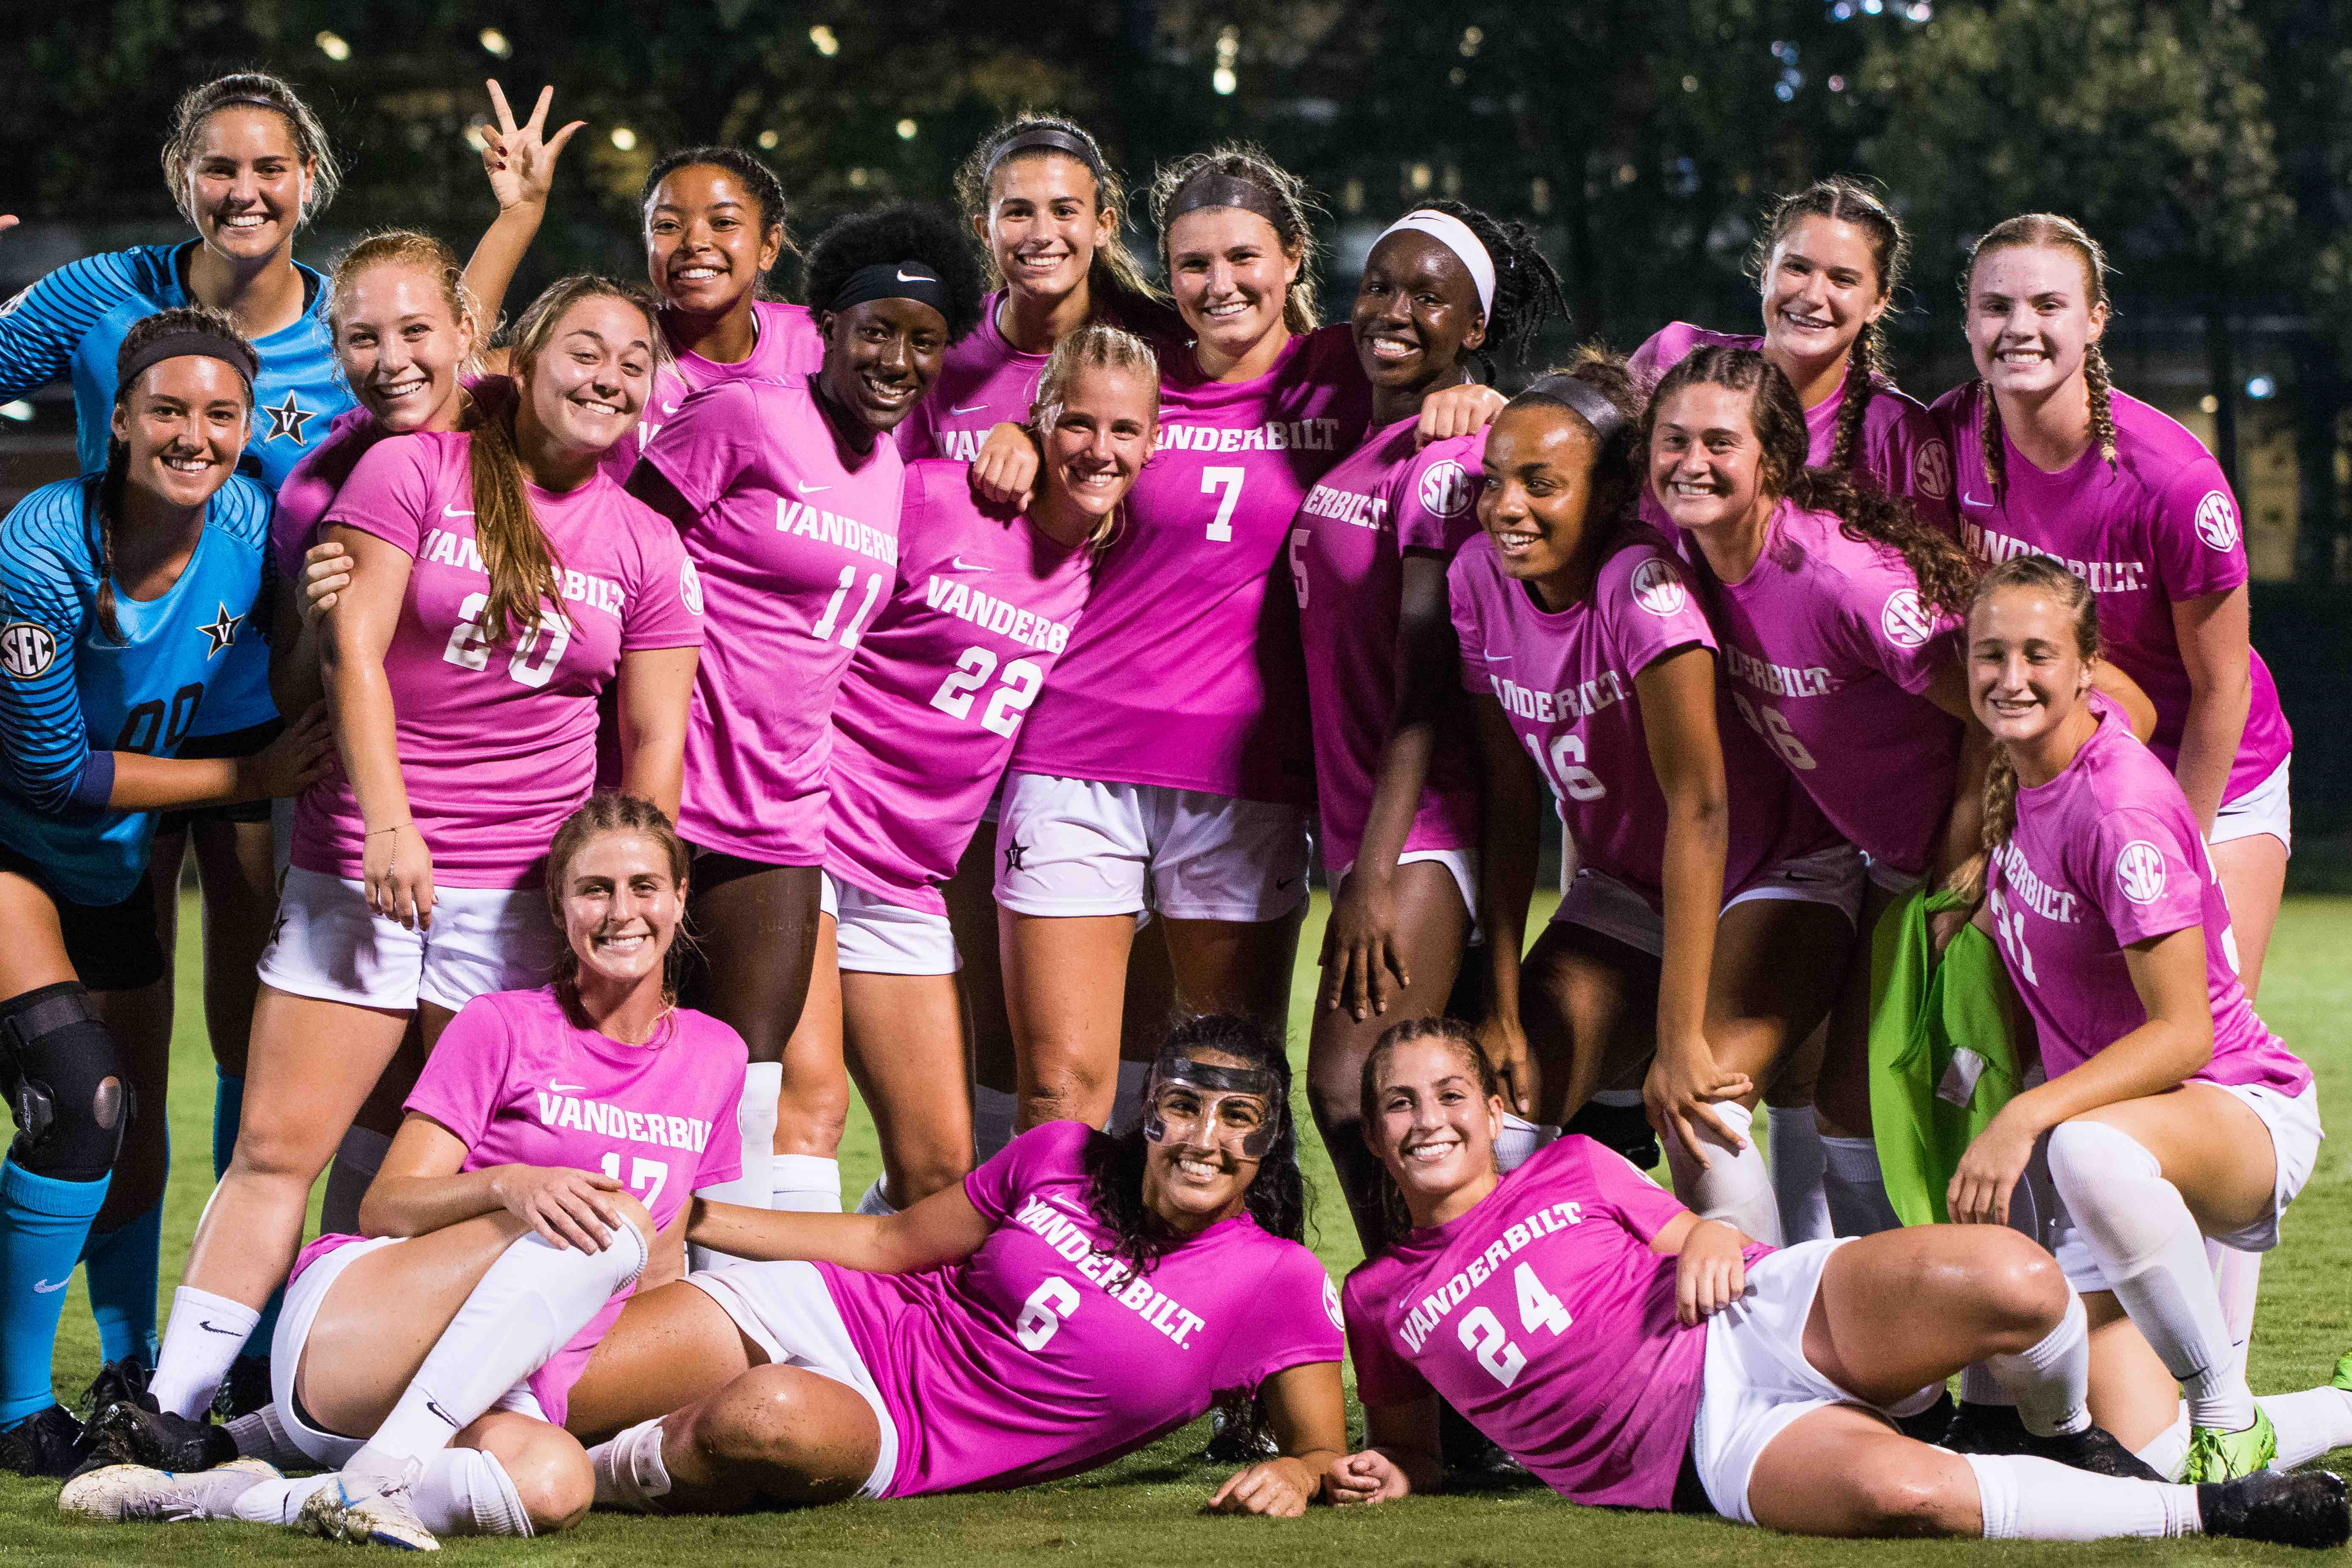 Vanderbilt Soccer climbs to #12 in latest coaches poll, ranked 10th by Top Drawer